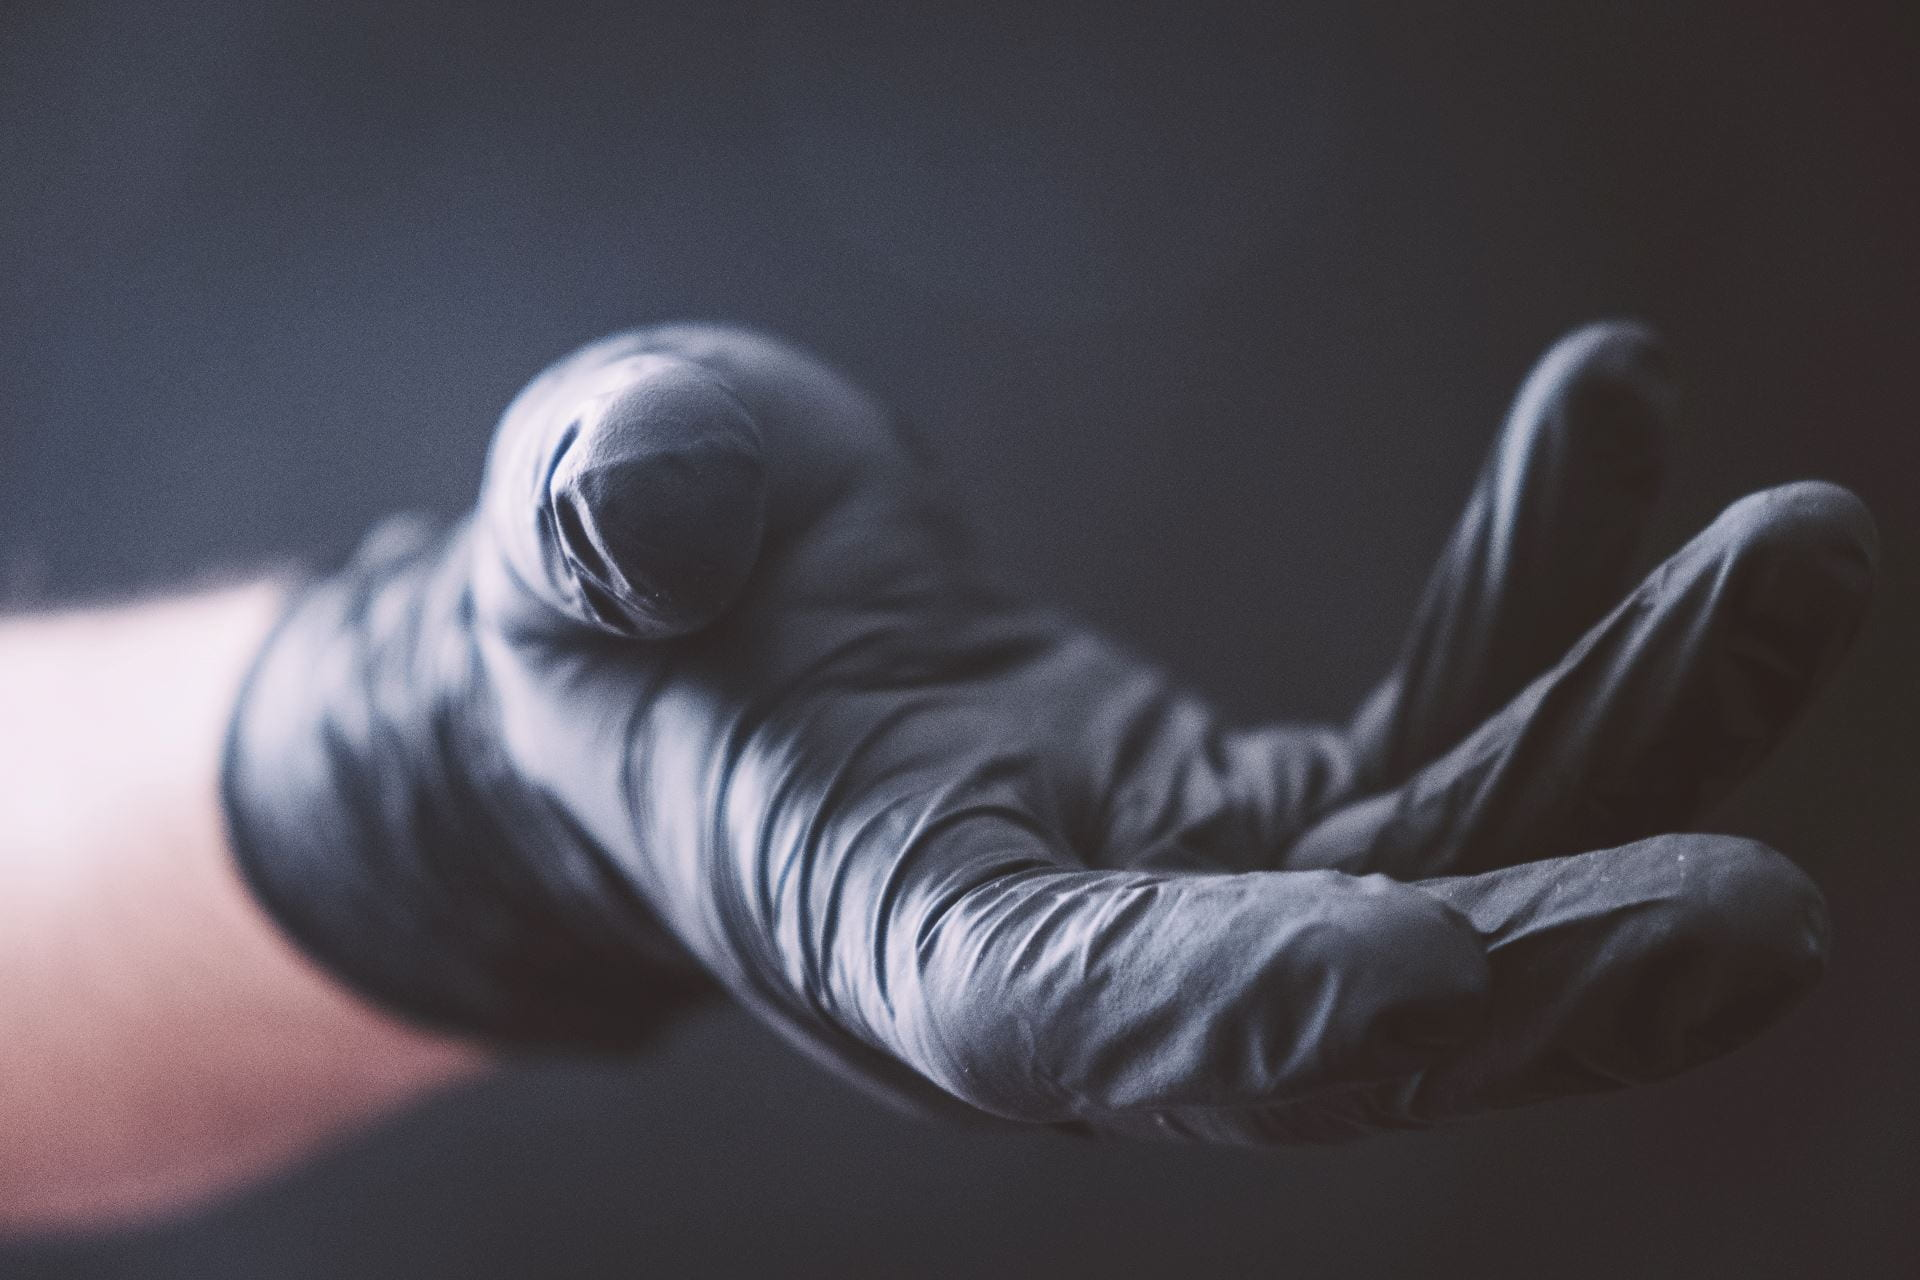 a photo of a gloved hand